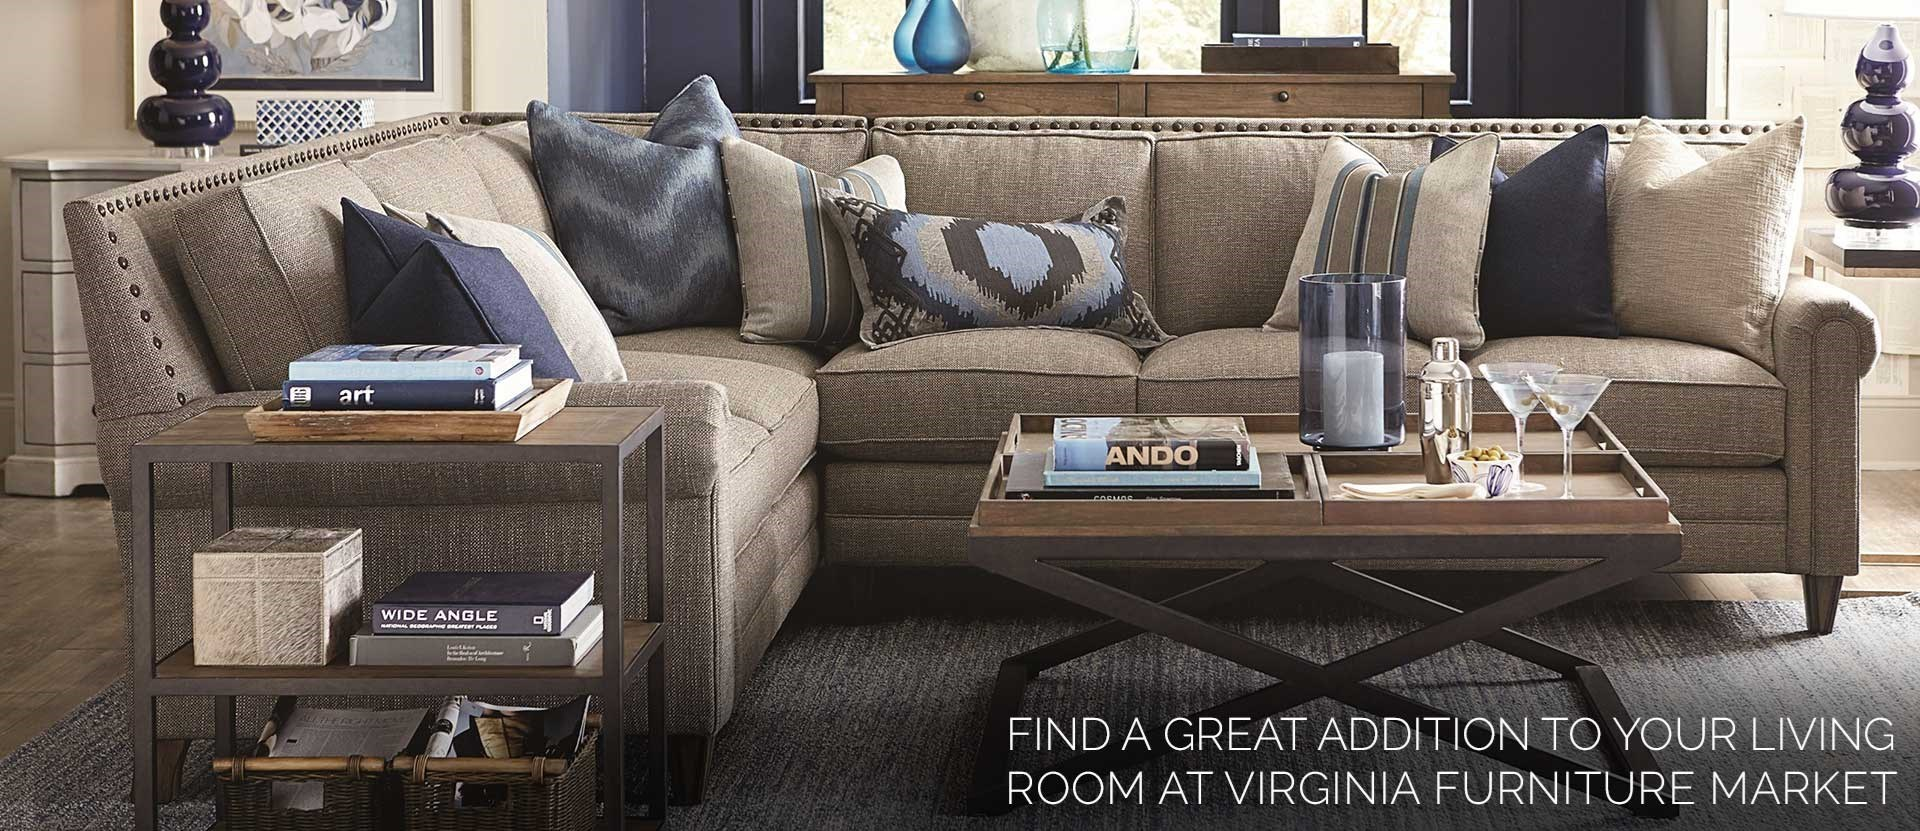 find a great selection of living room furnitutre at Virginia Furniutre Market!